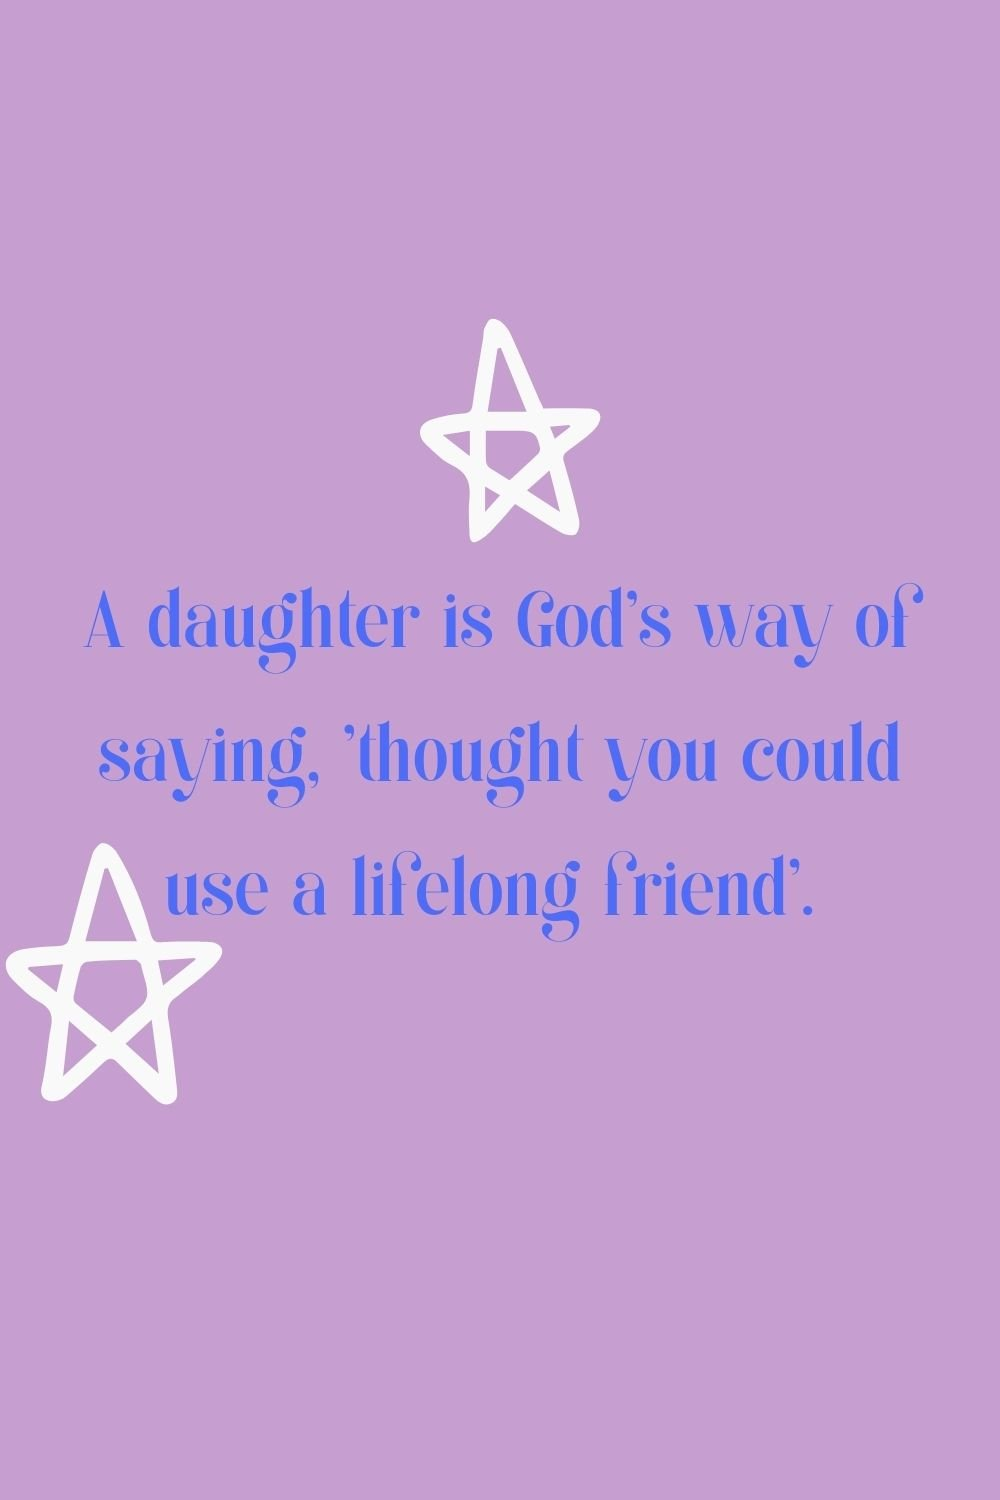 Quotes About Your Daughter for Nat'l Daughters Day